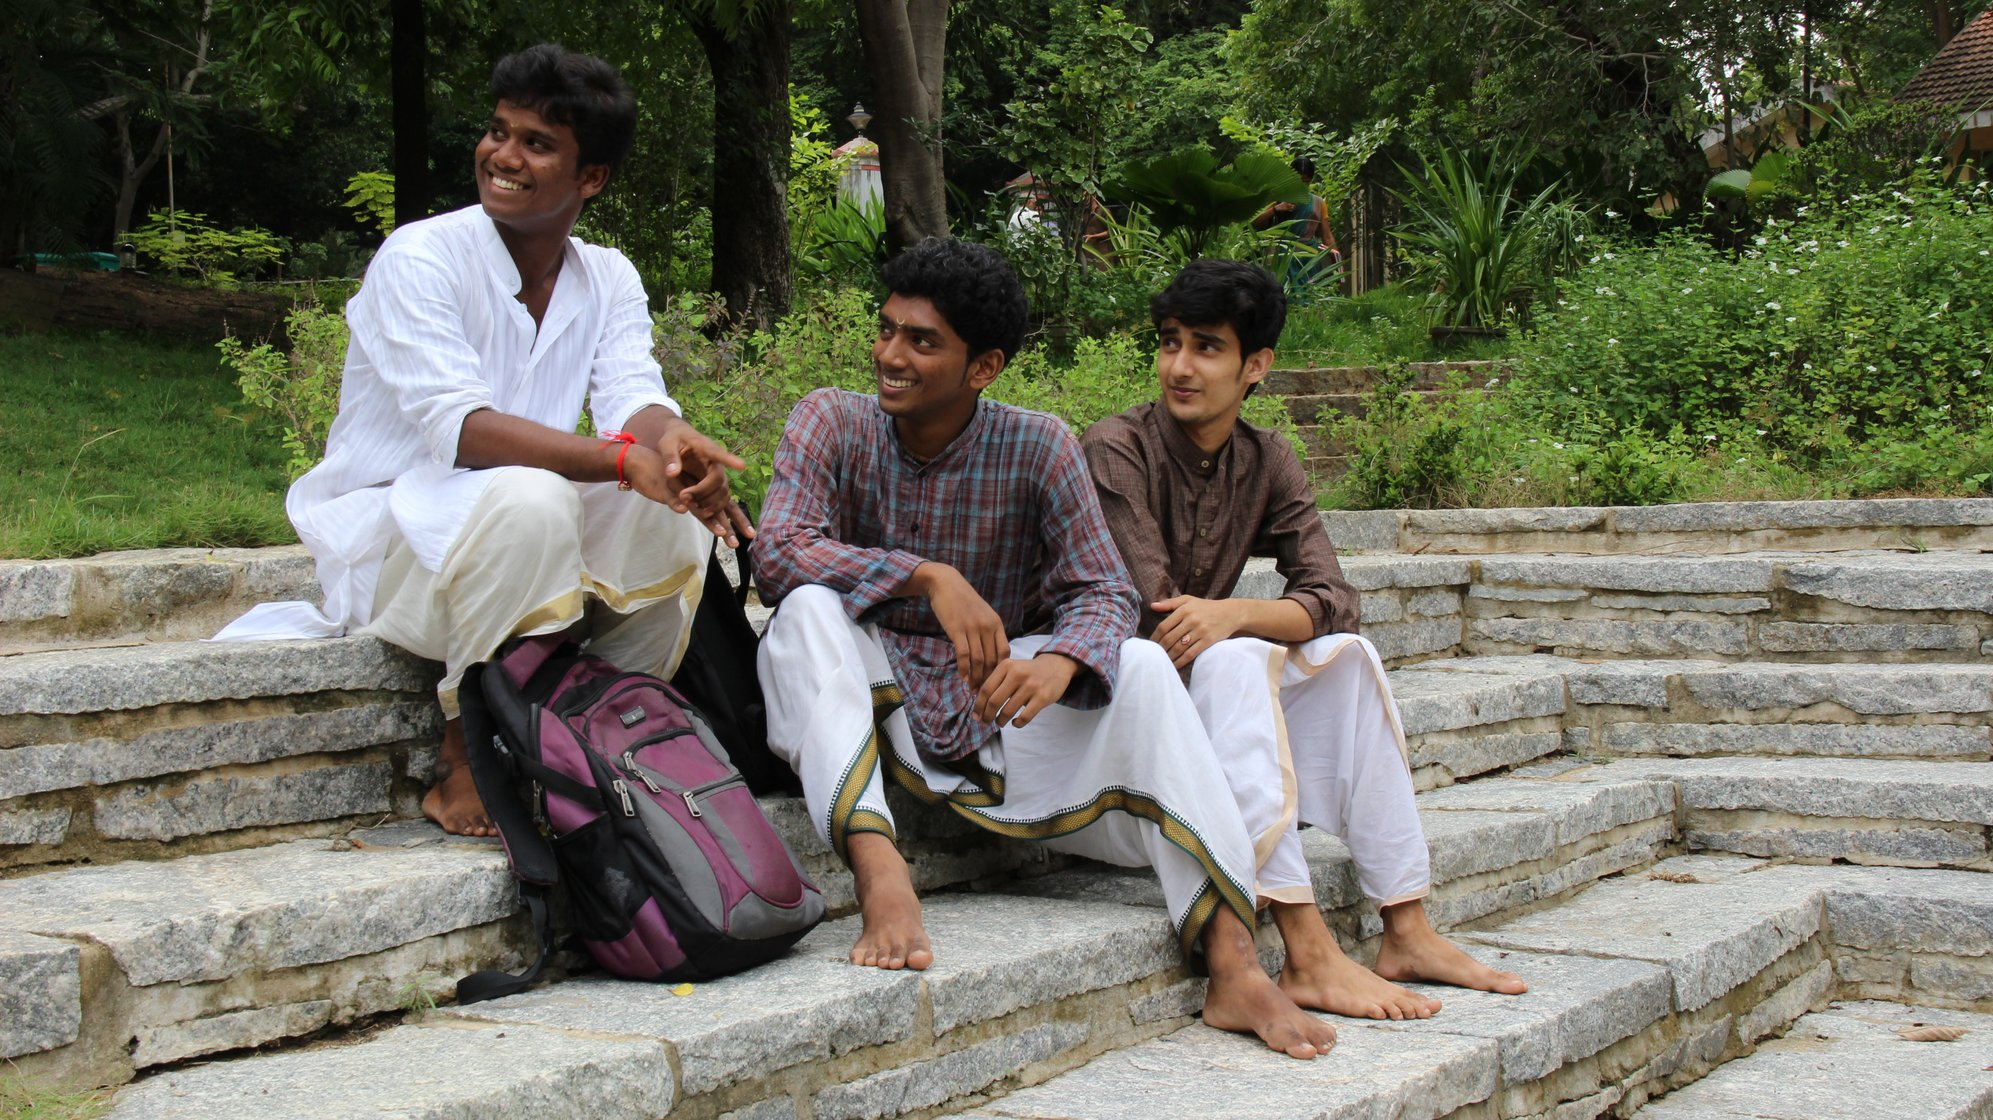 Between classes, Kali with his friends, at Kalakshetra's beautiful, green campus